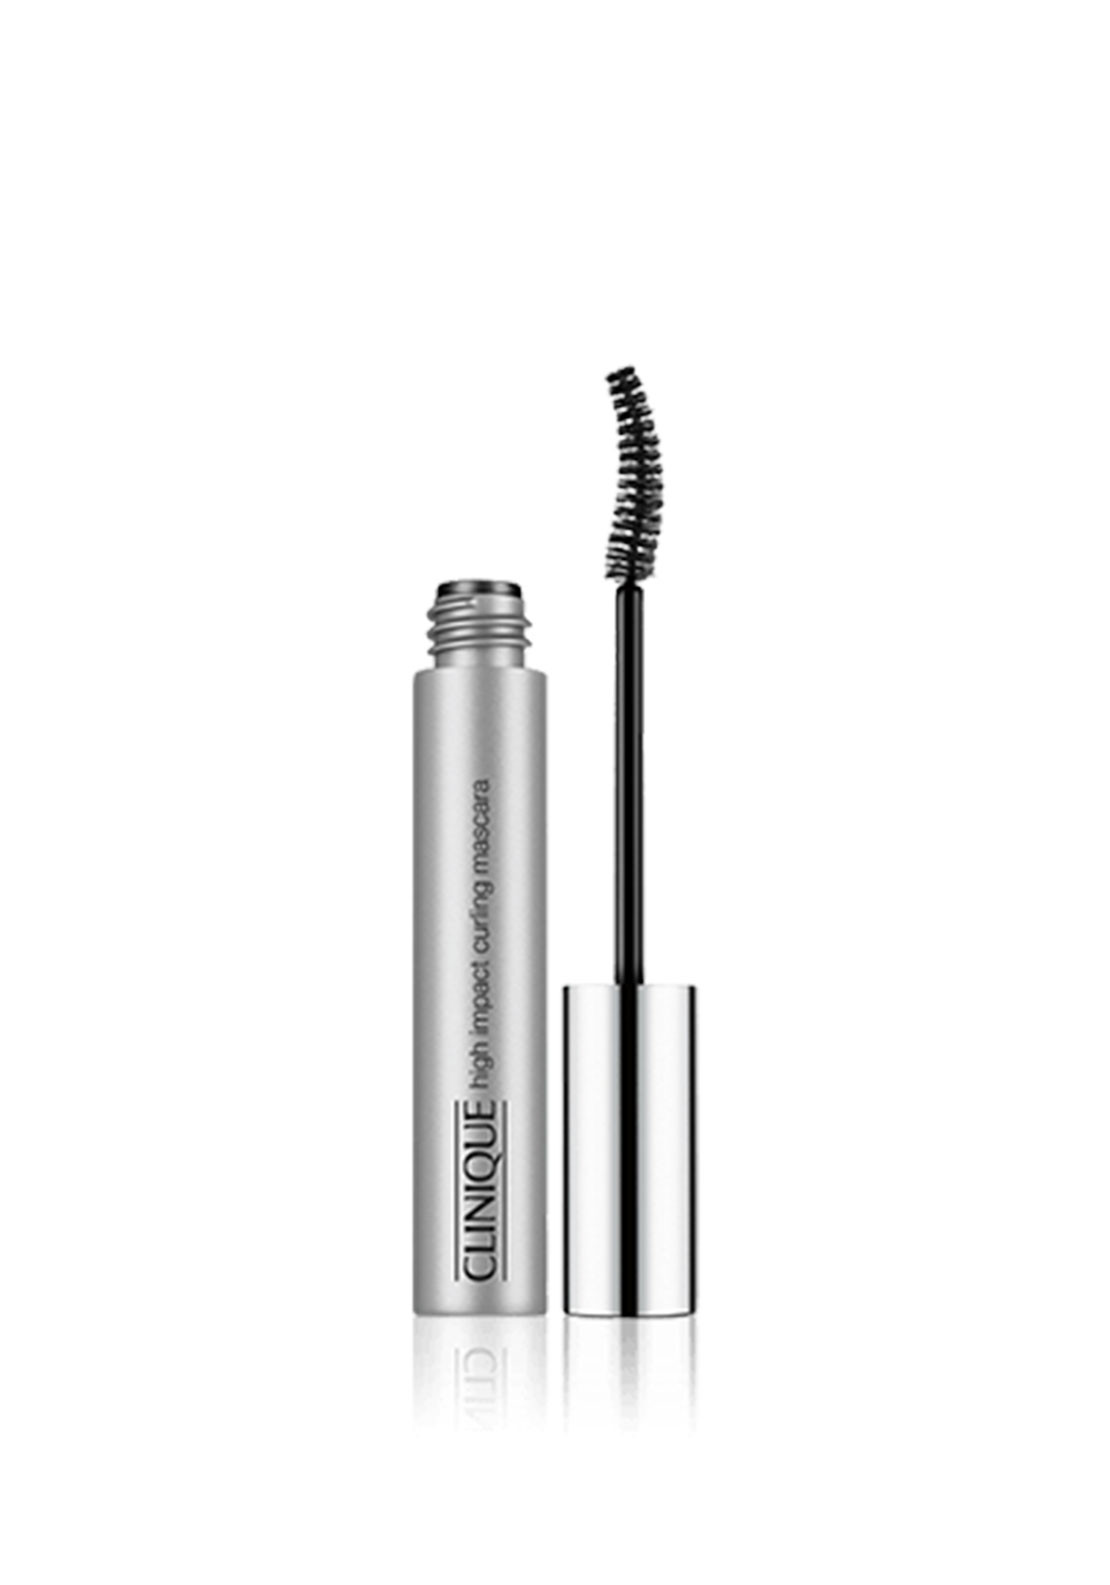 Clinique High Impact Curling Mascara, 01 Black